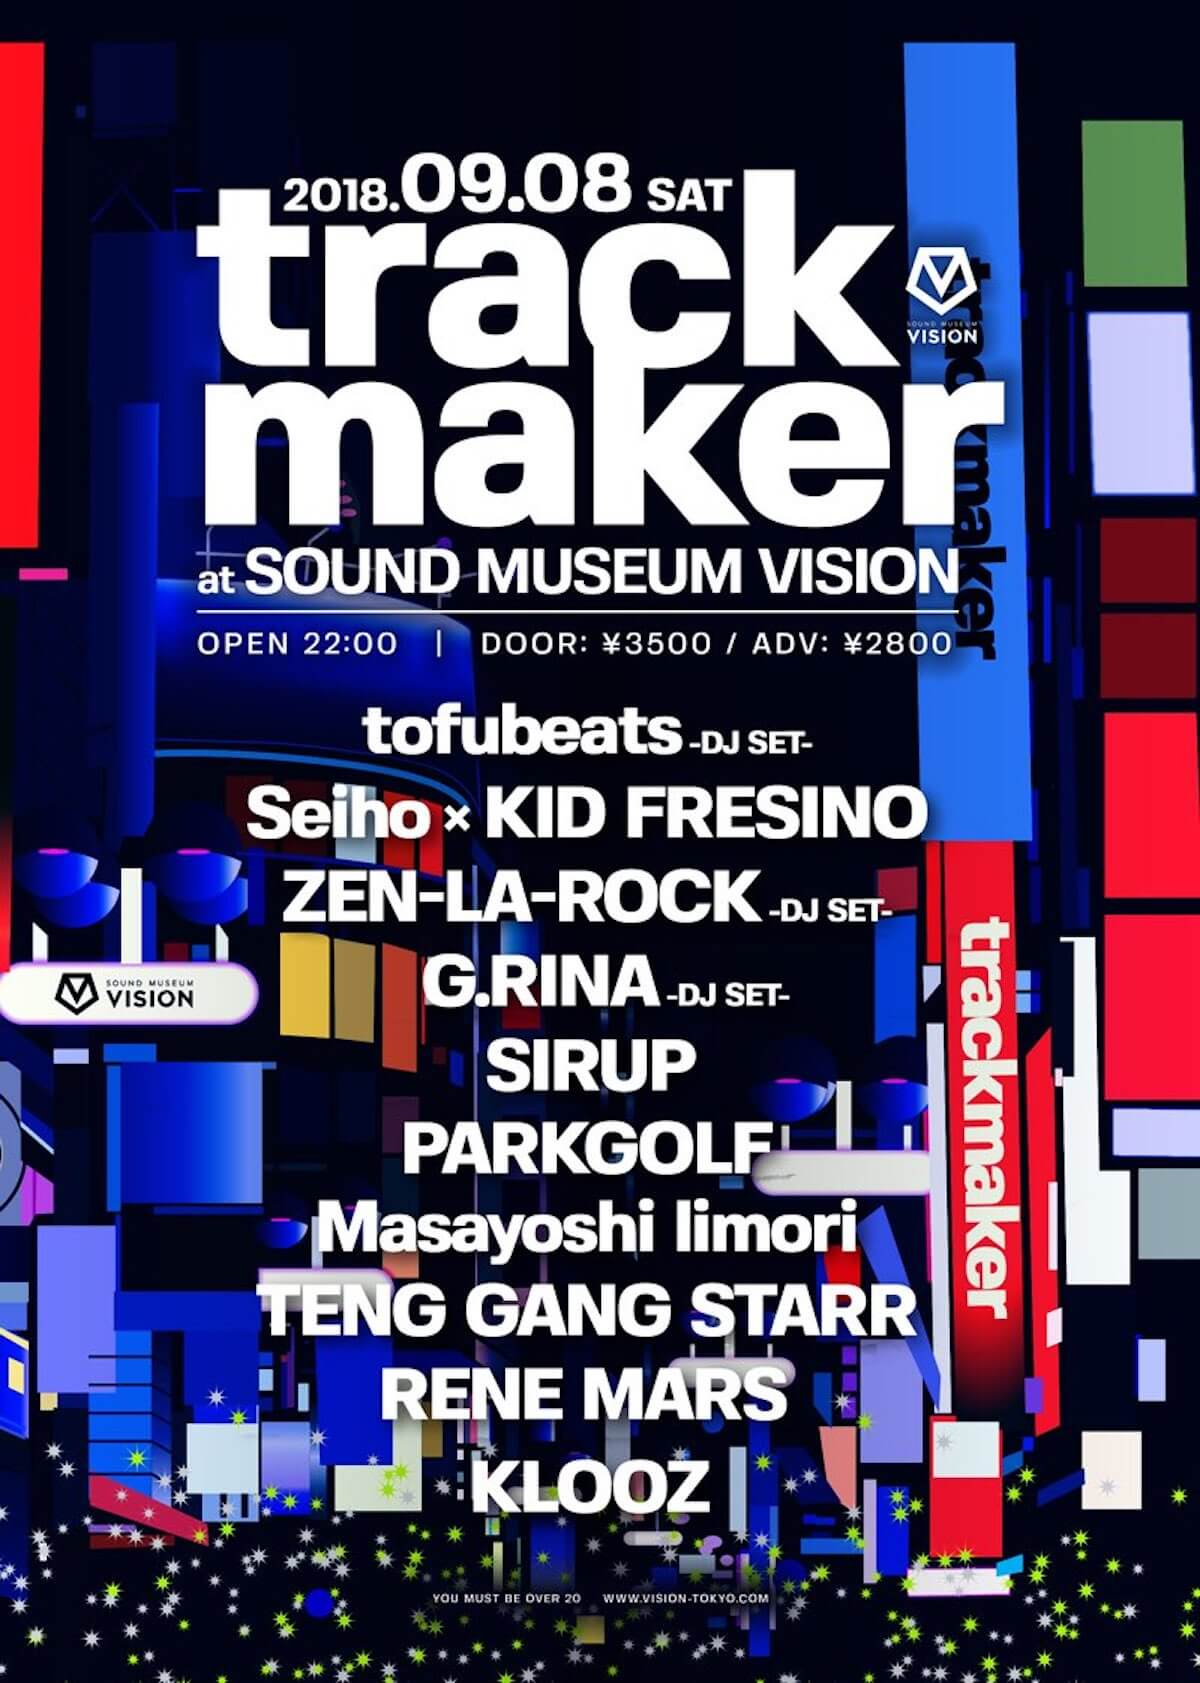 trackmaker